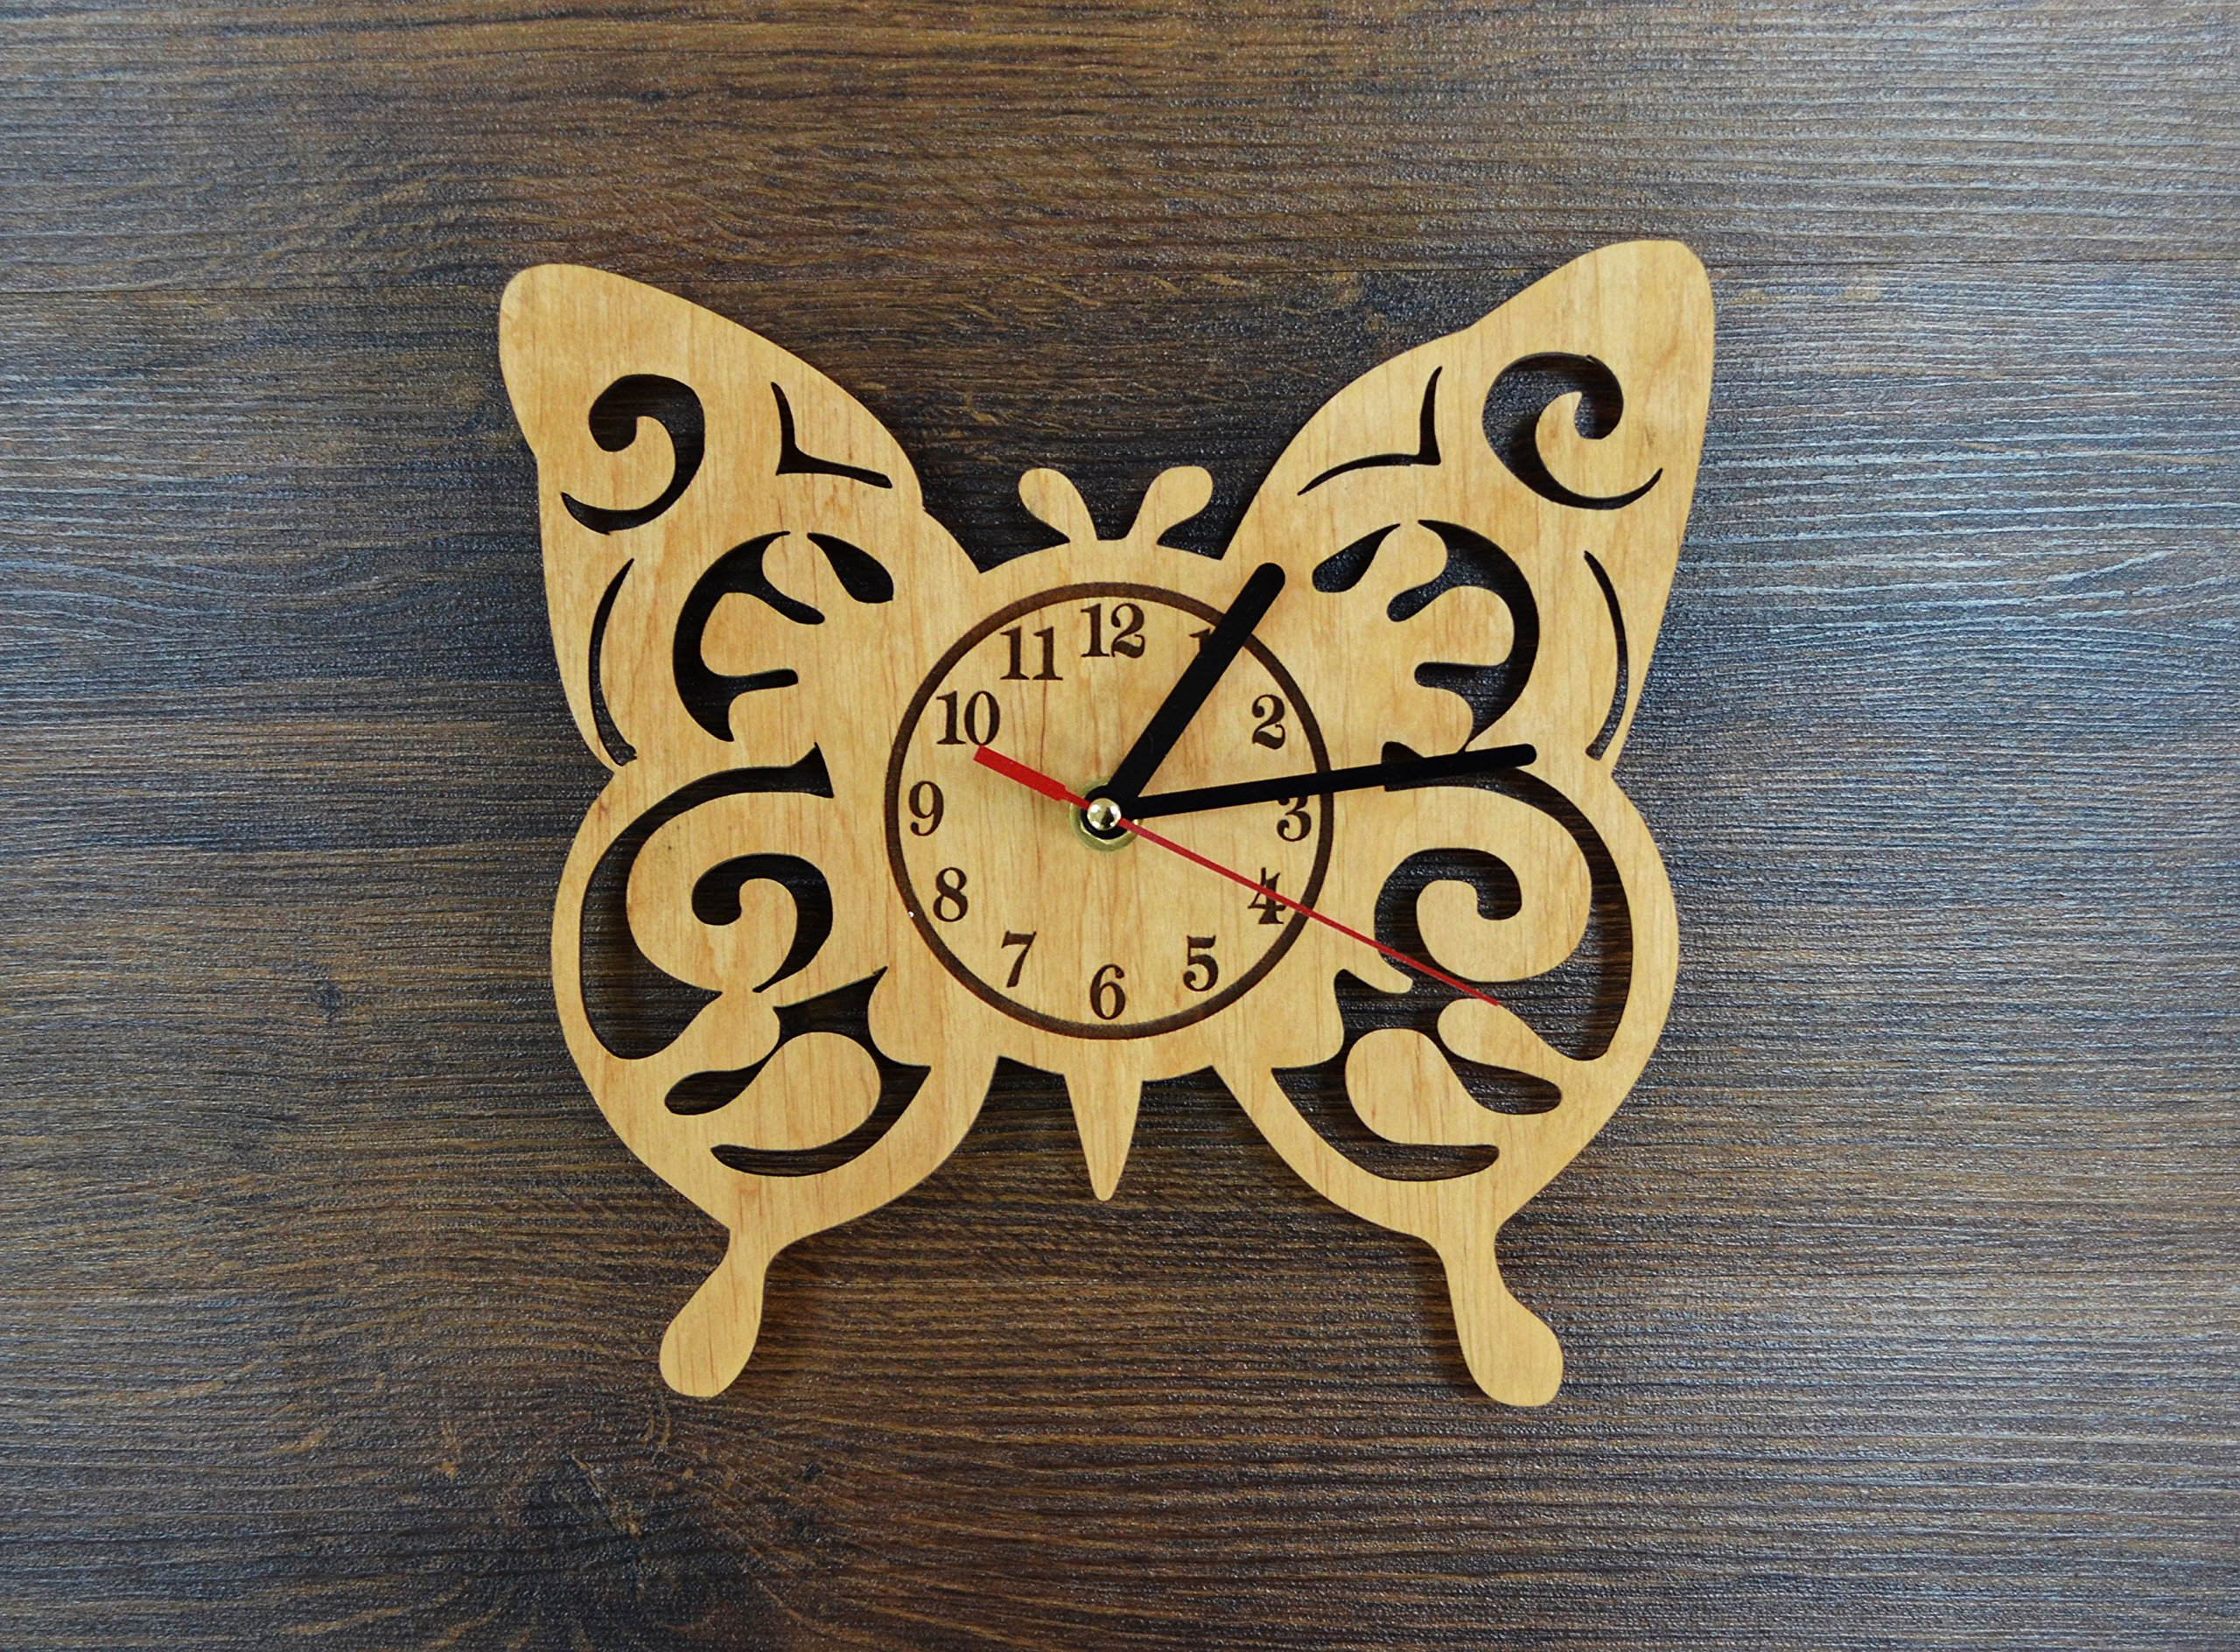 Butterfly Design Real Wood Wall Clock - Eco Friendly Natural Kids Room Wall Decor - Creative Gift Idea for Kids and Teens